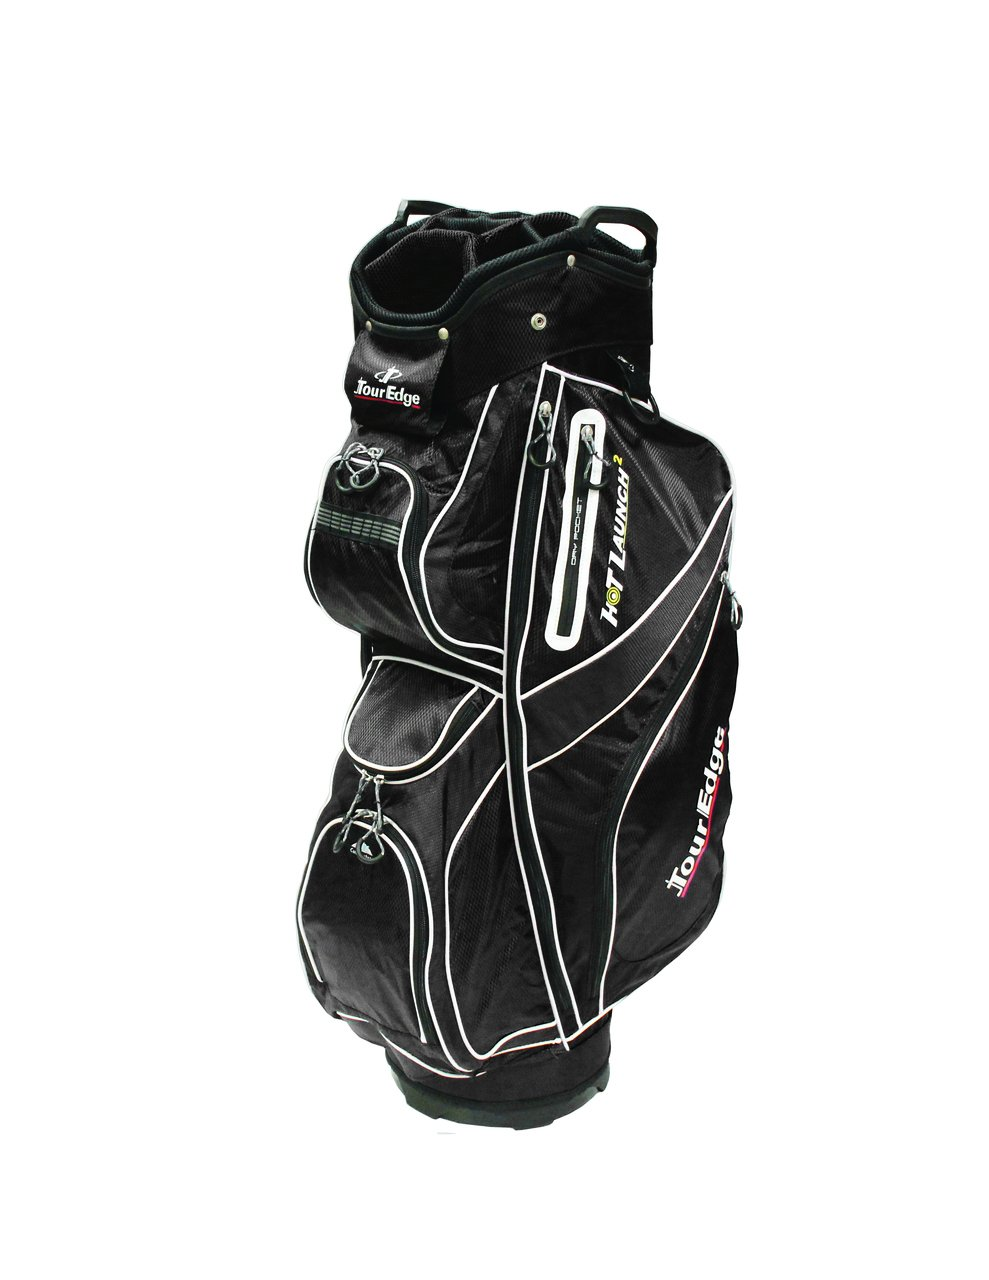 Amazon.com: Carrito para palos de golf Tour Edge 2 ...